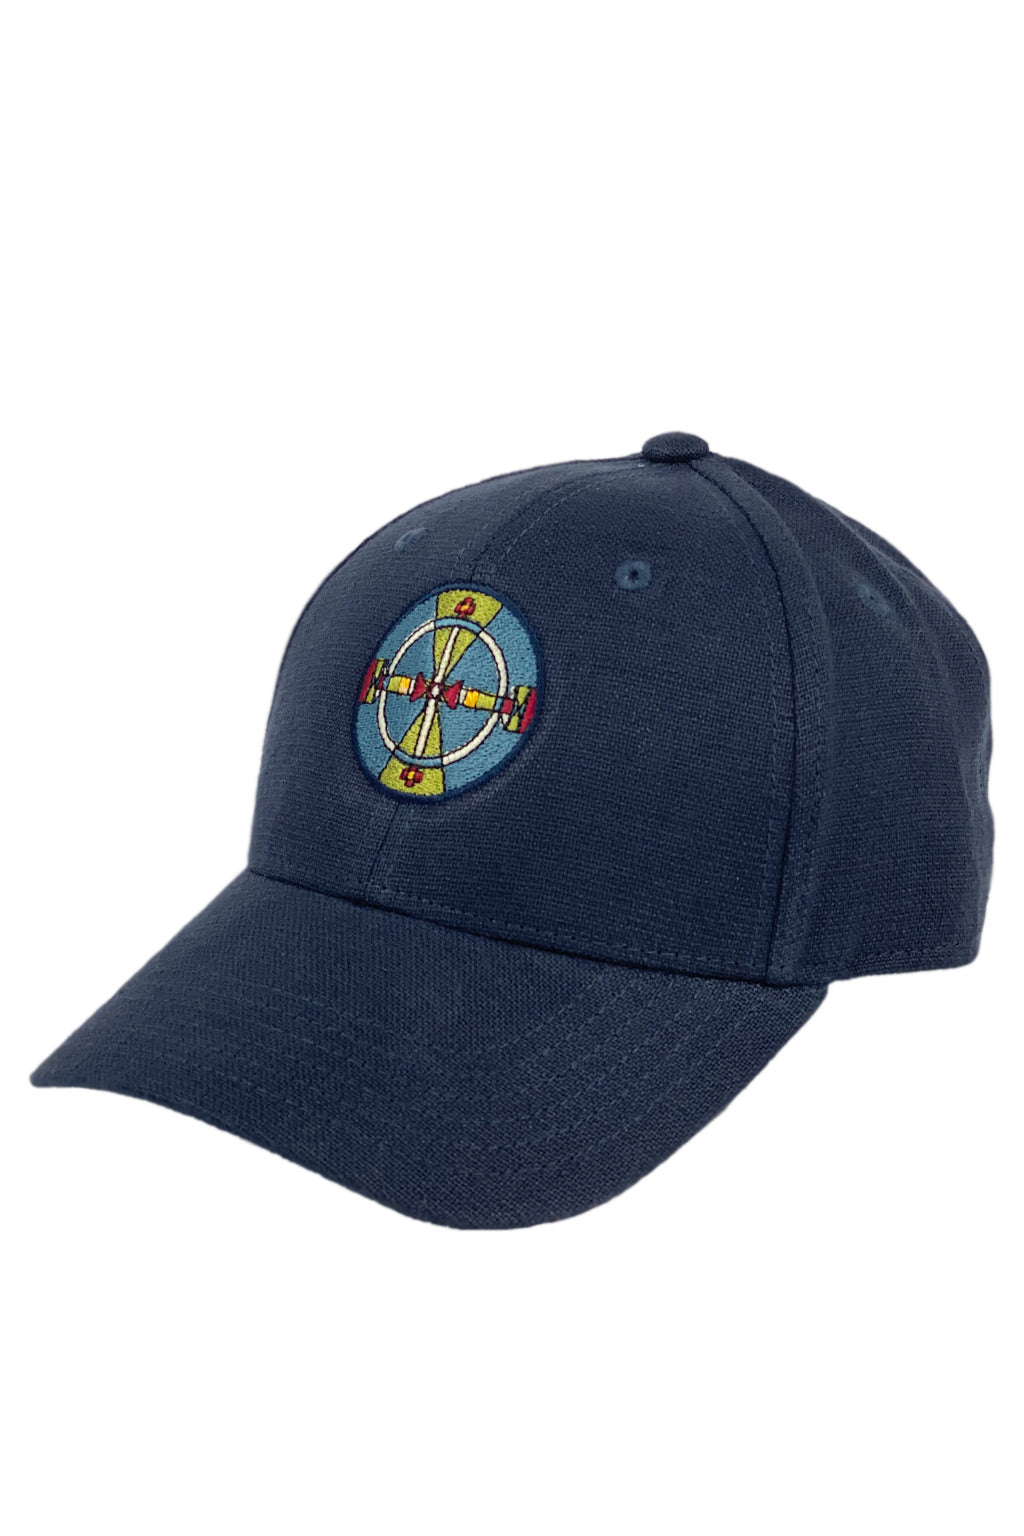 Geo Shield Ladies Strapback Hat